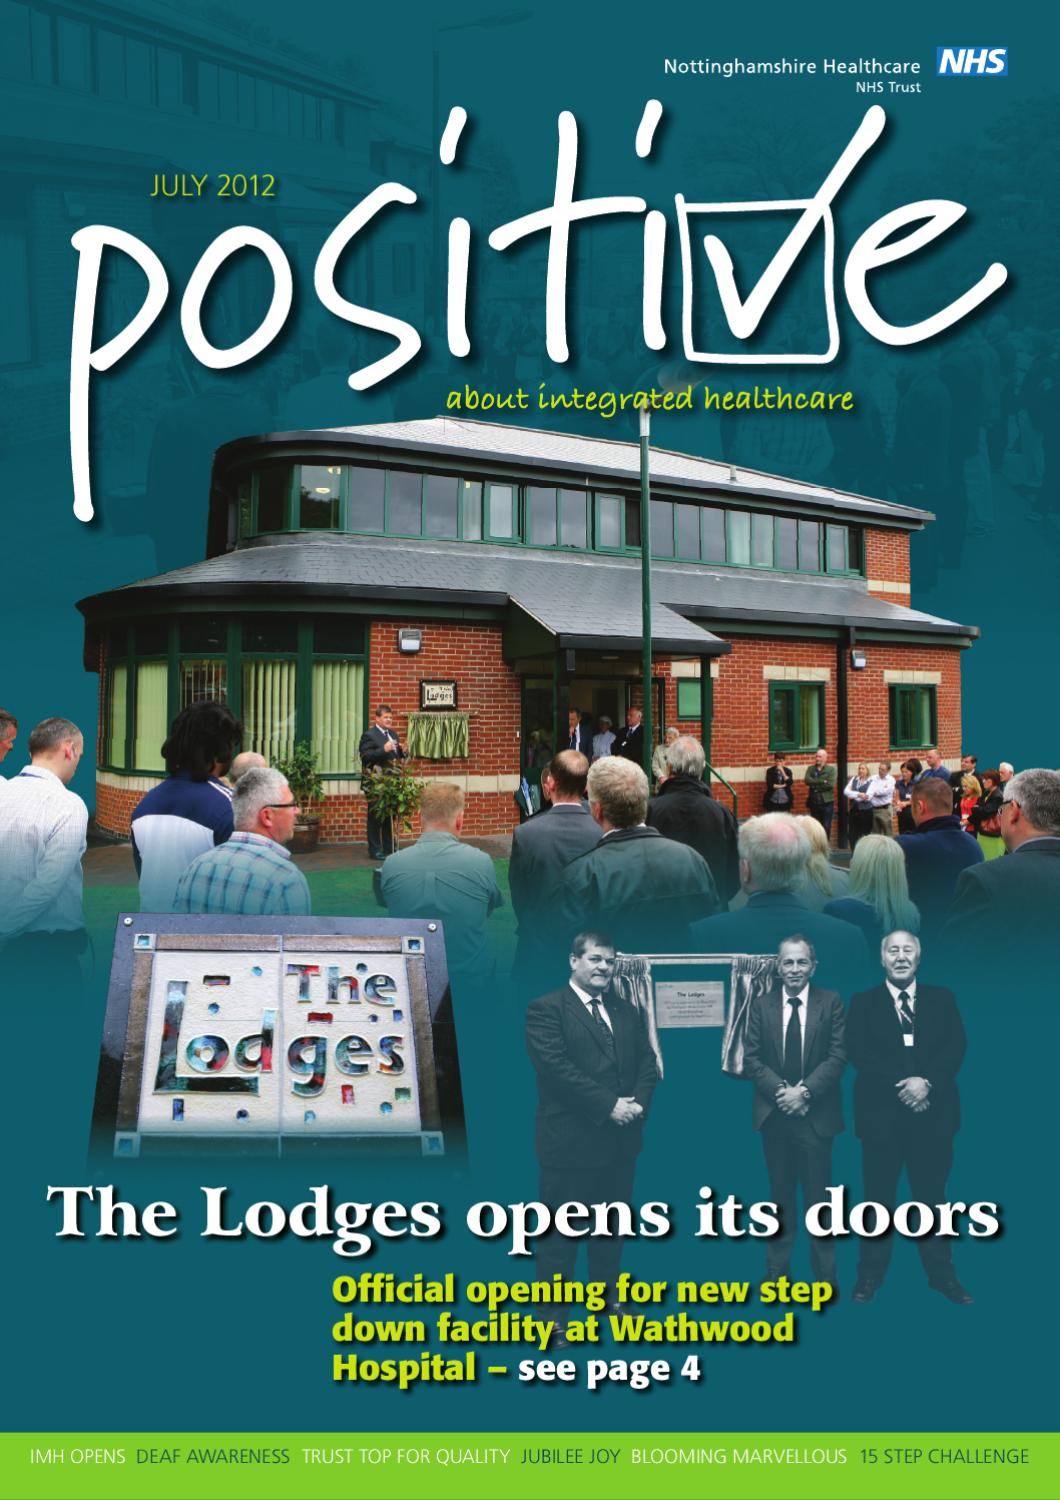 Positive July 2012 by Hargrave Design - issuu